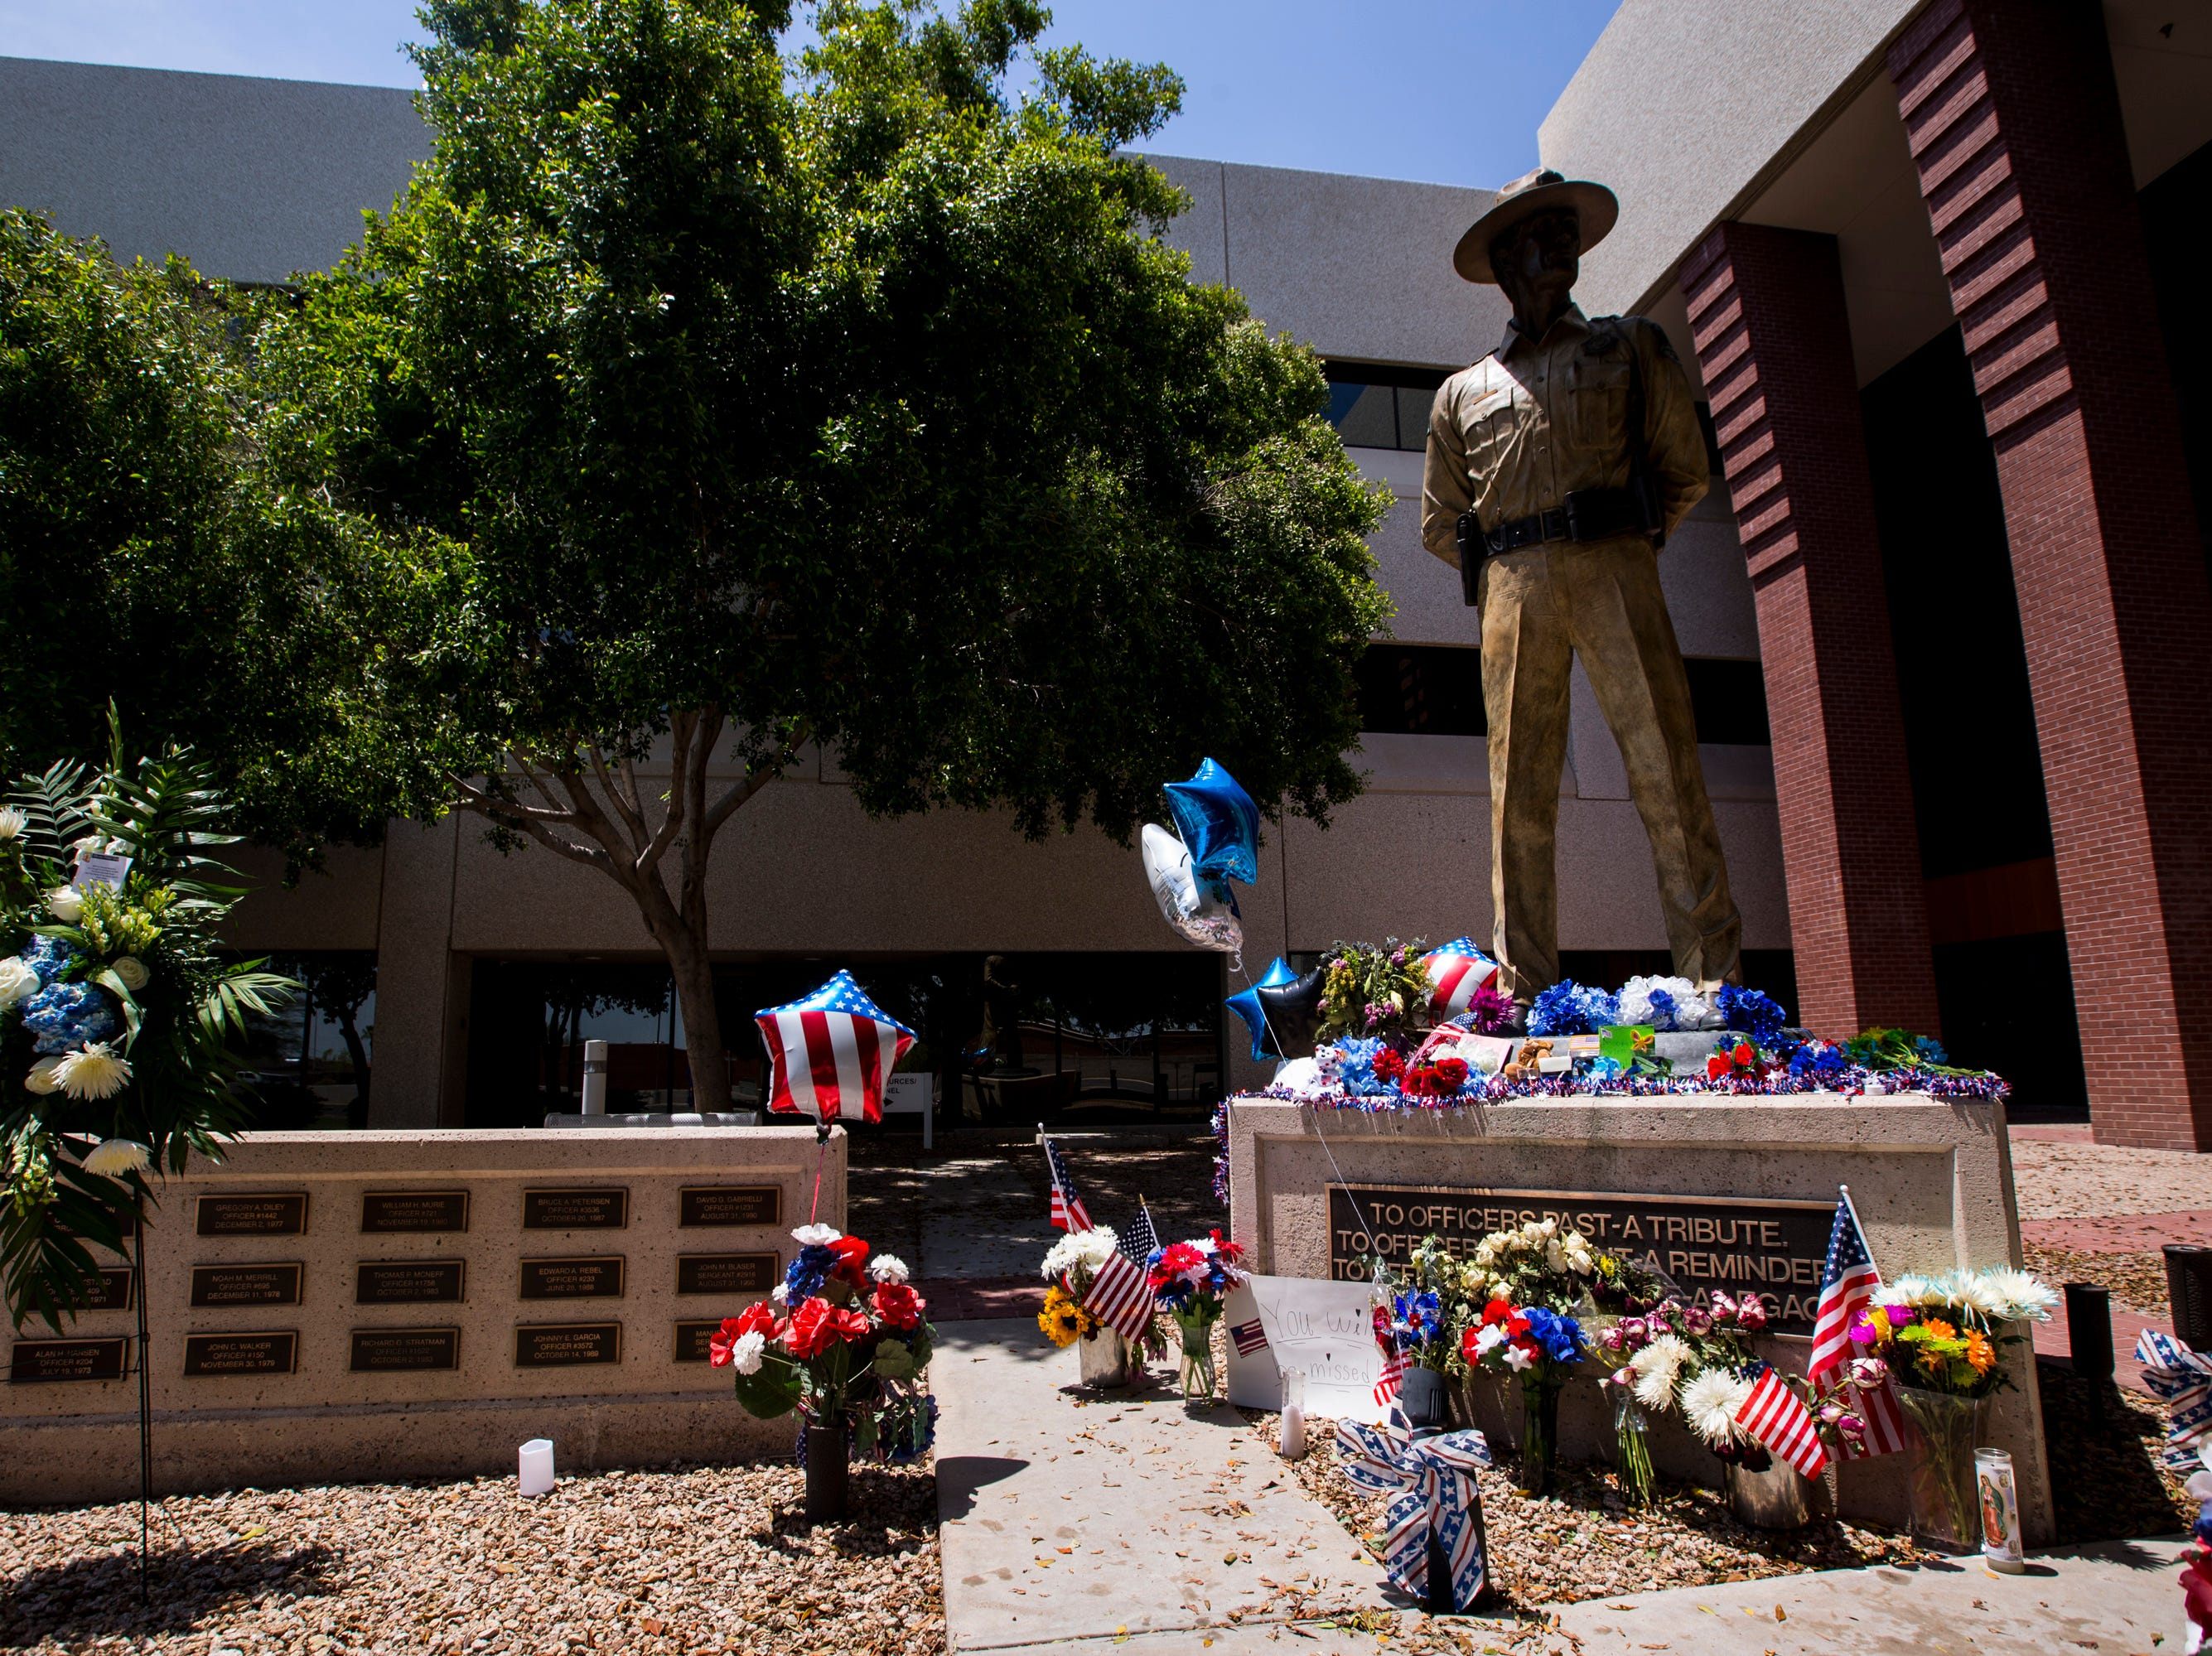 A memorial for DPS Trooper Tyler Edenhofer is pictured on Saturday, July 28, 2018, at the Arizona Department of Public Safety building in Phoenix. Edenhofer was fatally shot on July 25.